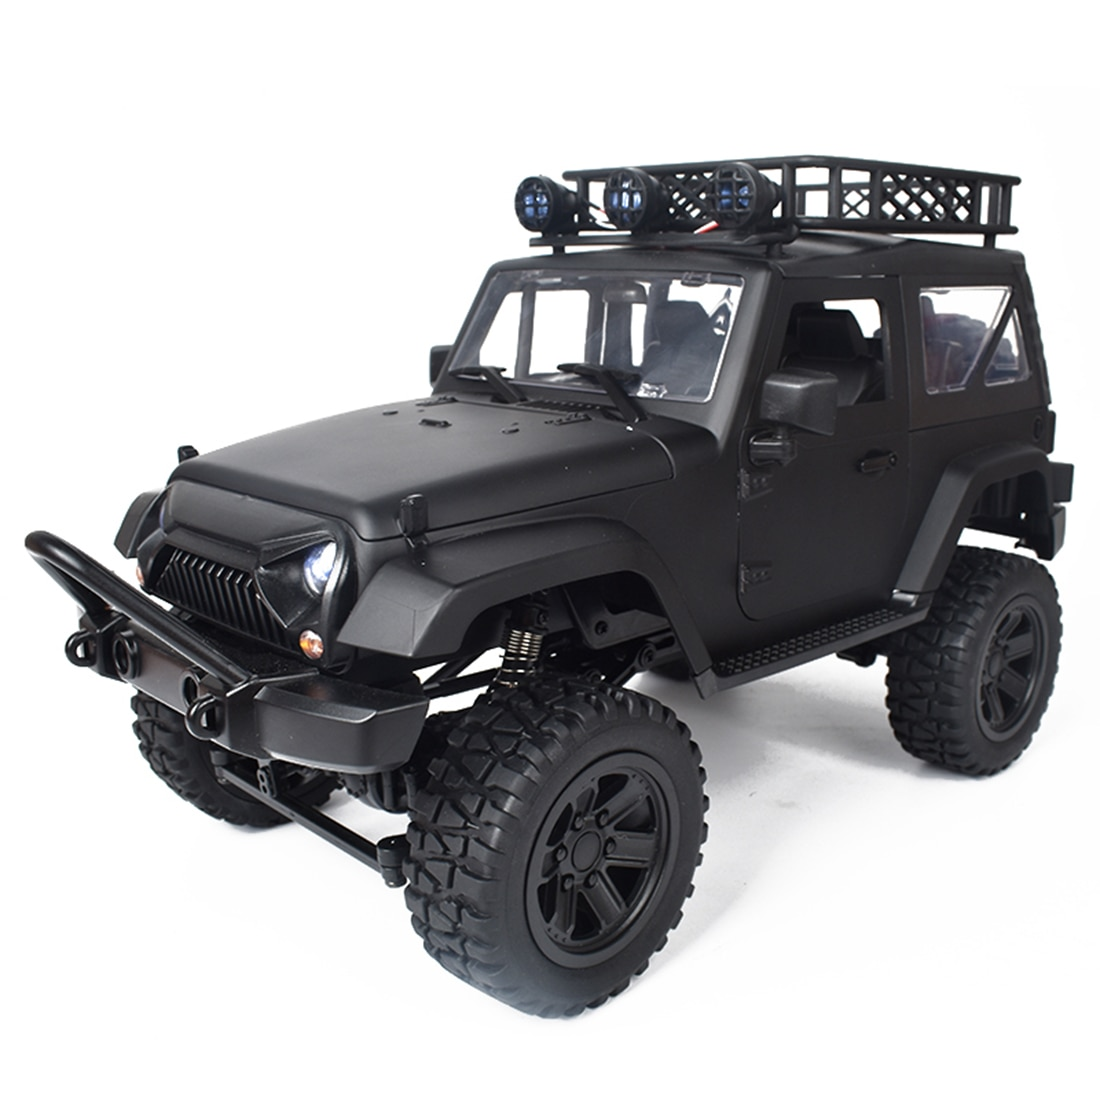 1:14 2.4G 4WD 20KM/H Full Scale Climbing Car Remote Control Off-road Vehicle with LED Lights enlarge